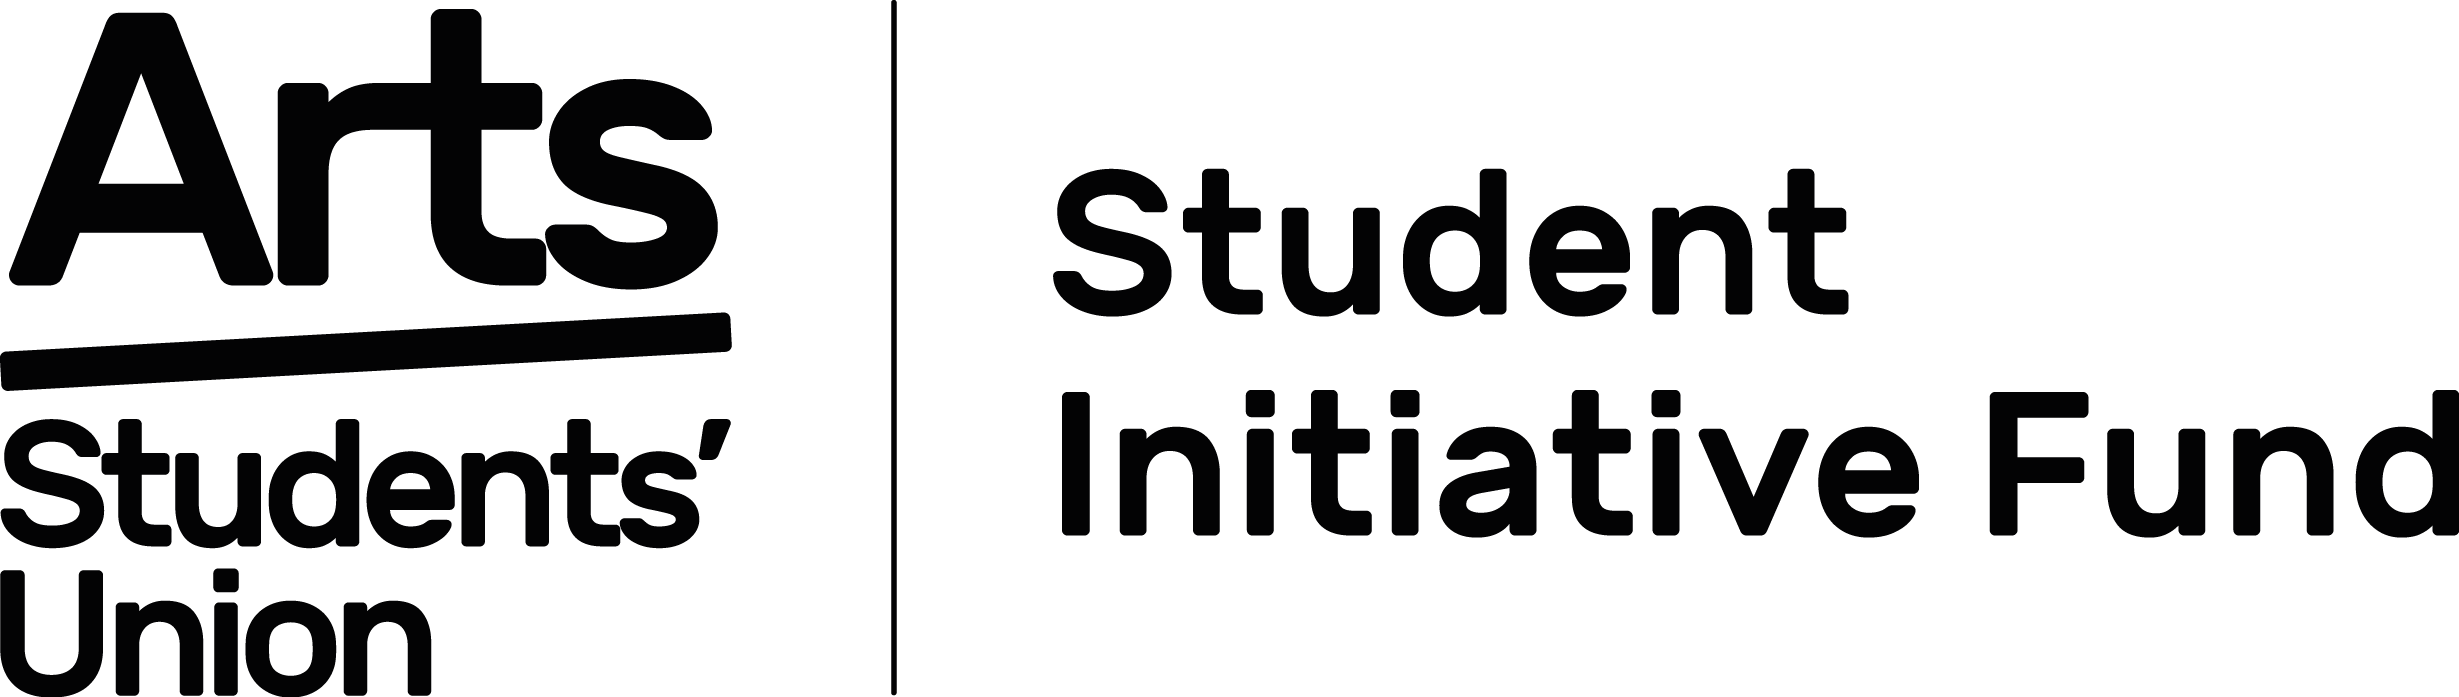 Arts-SU_student-initiative-fund-logo-black.png